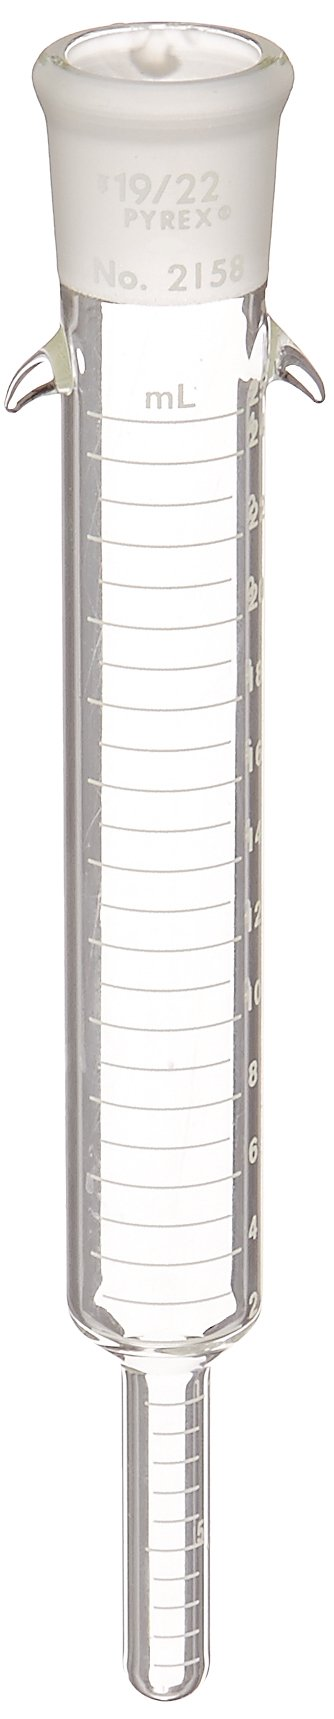 Corning Pyrex Borosilicate Glass Kuderna-Danish Concentrator Replacement Tube Only, 25ml Capacity (Case of 6)